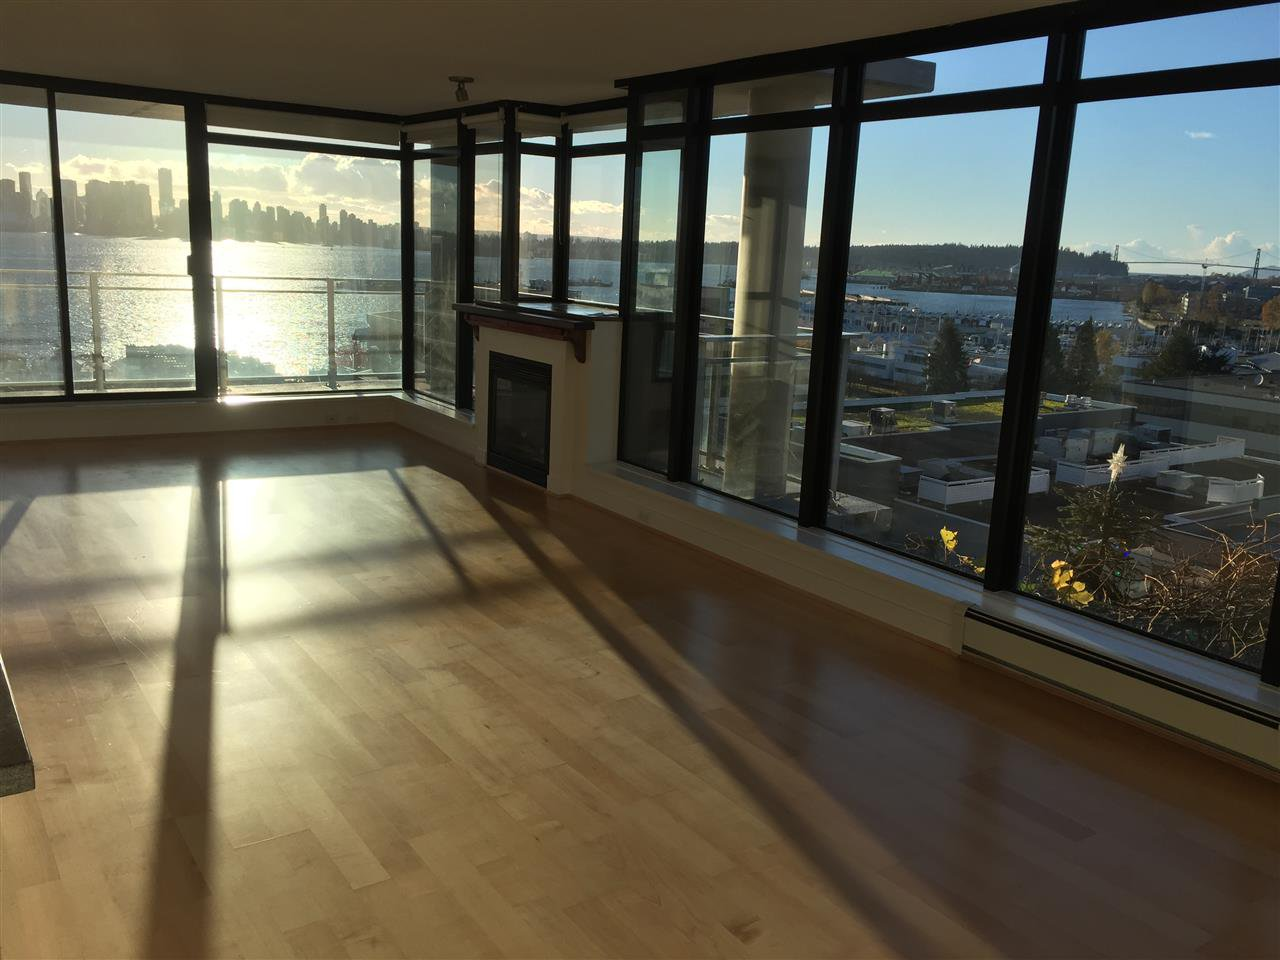 Photo 9: Photos: 1008 175 W 1ST STREET in North Vancouver: Lower Lonsdale Condo for sale : MLS®# R2015421